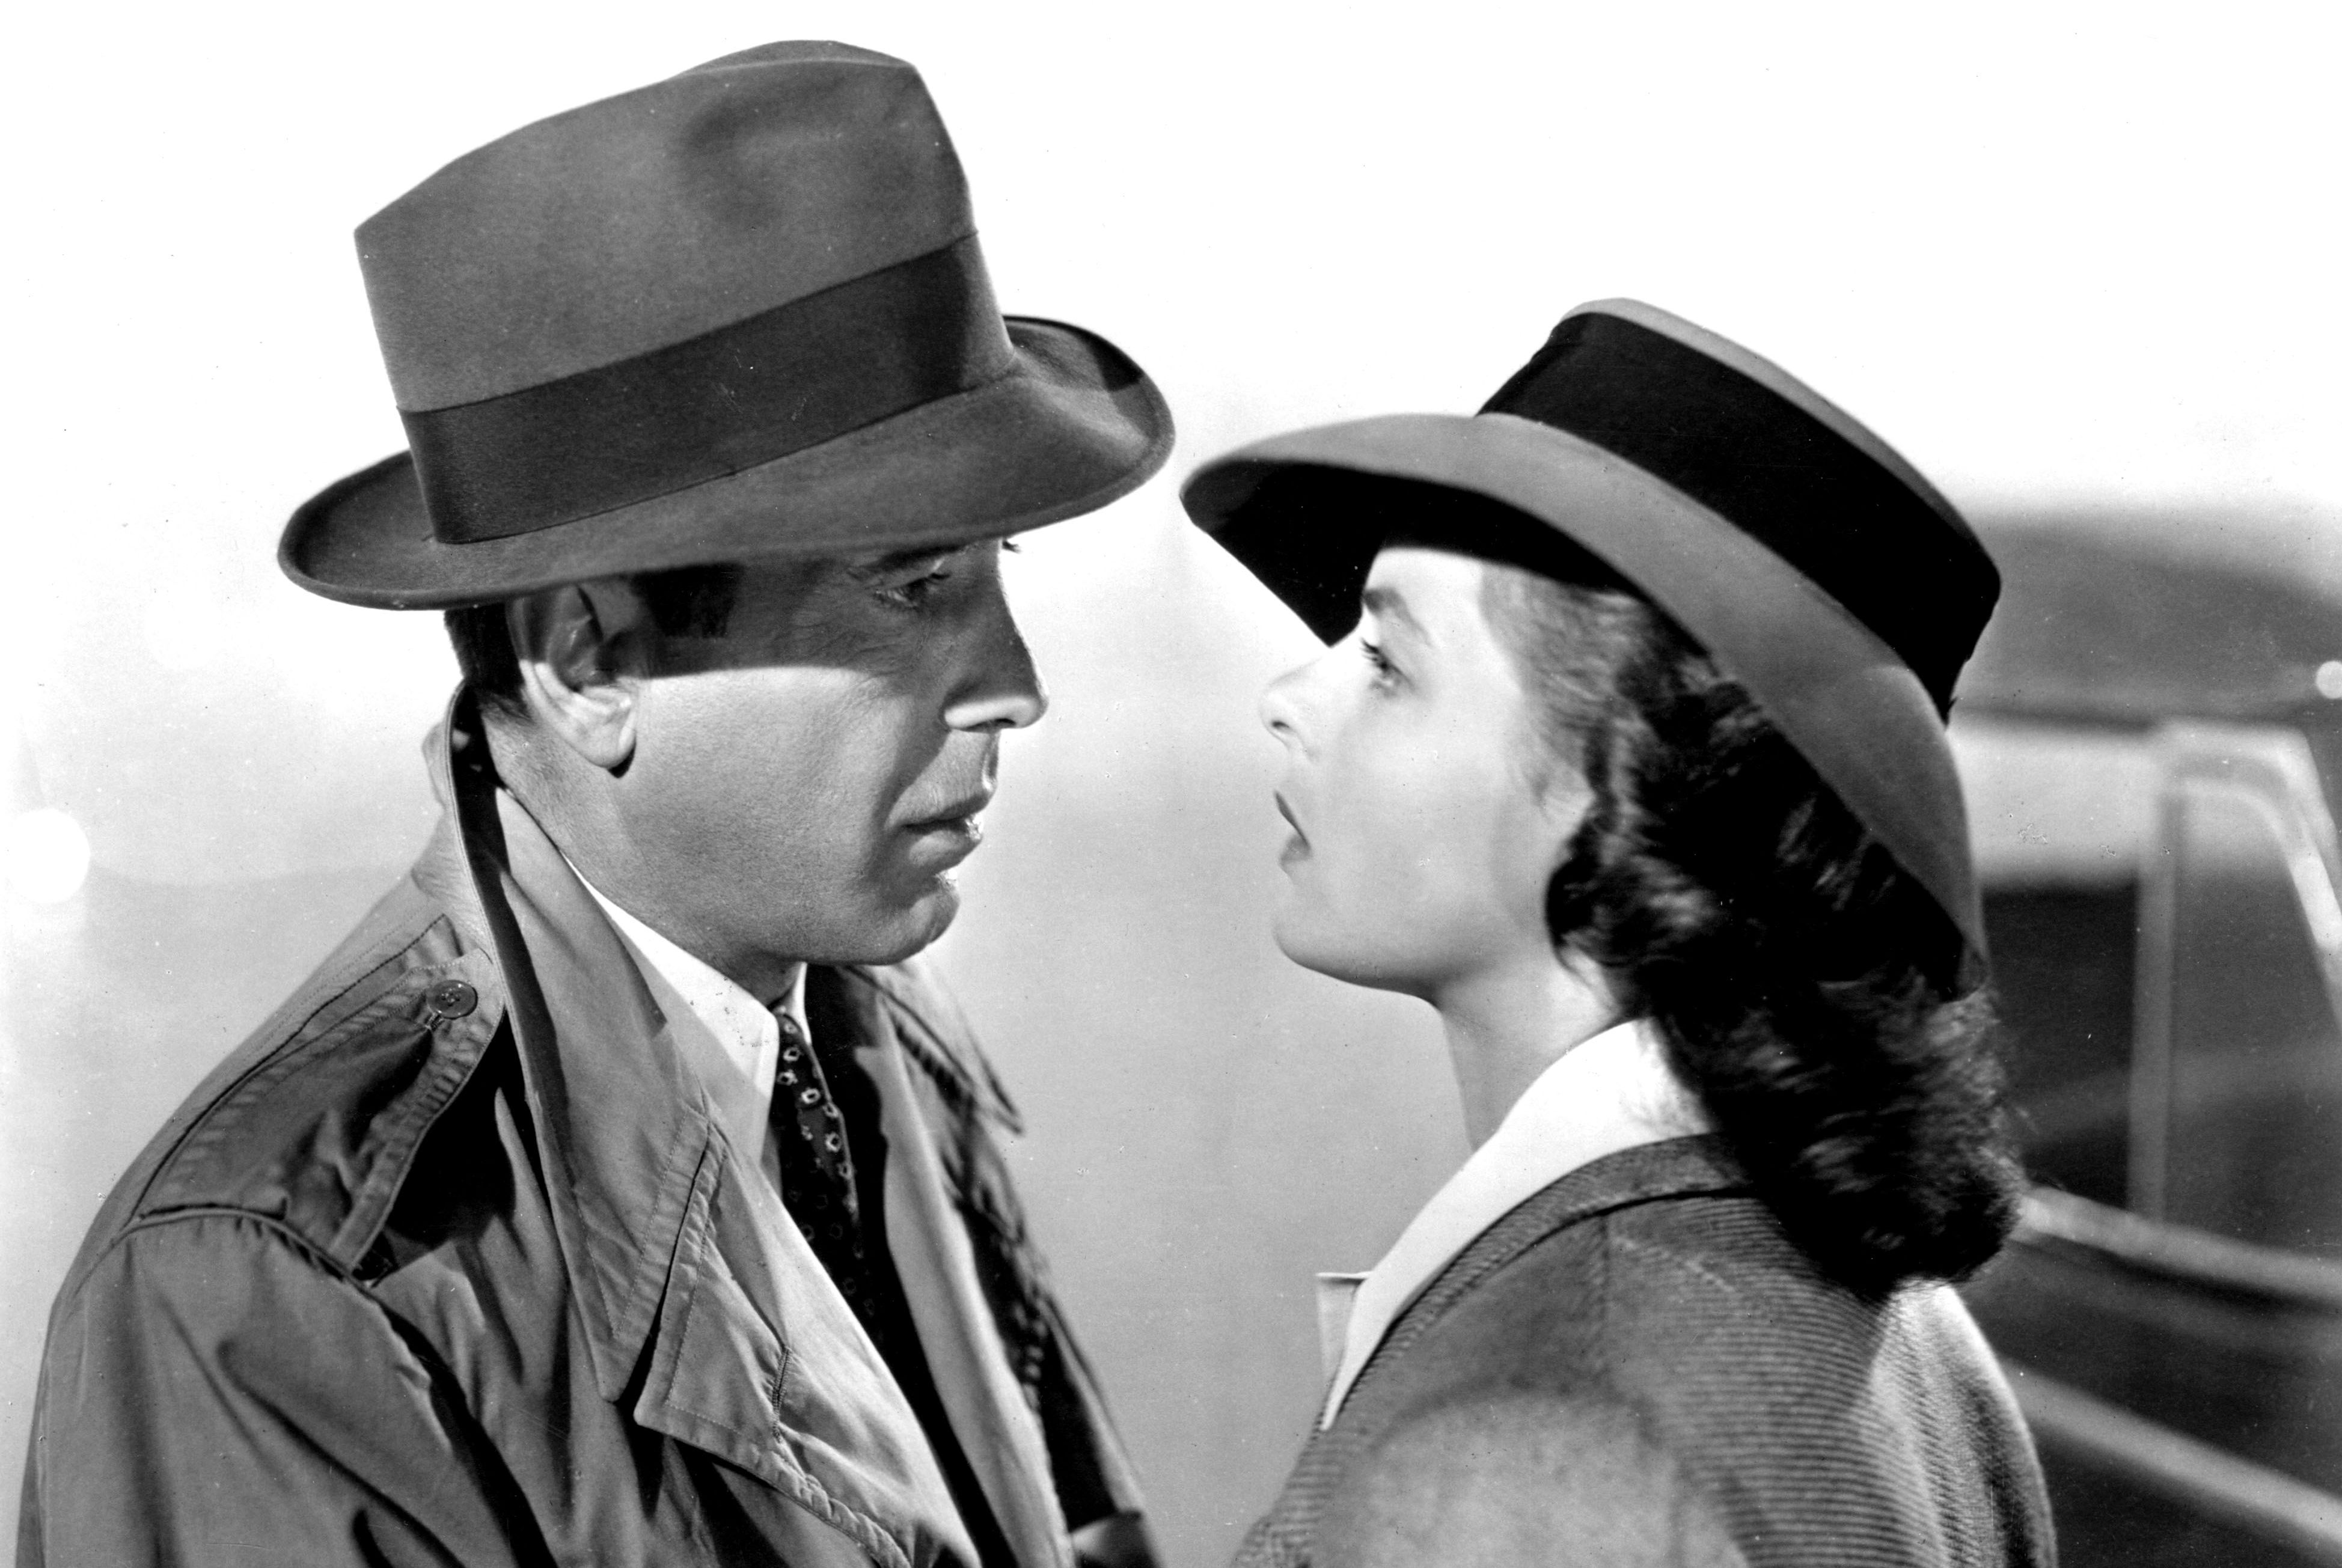 Watch Now Casablanca is up there with the Godfather for most quoted screenplay of all time. This WWII classic, directed by Michael Curtiz, pairs Scandinavian beauty Ingrid Bergman with tough guy Humphrey Bogart for a story of lovers ripped apart by war and reunited in a far flung Moroccan piano bar—of all the gin joints in the world.